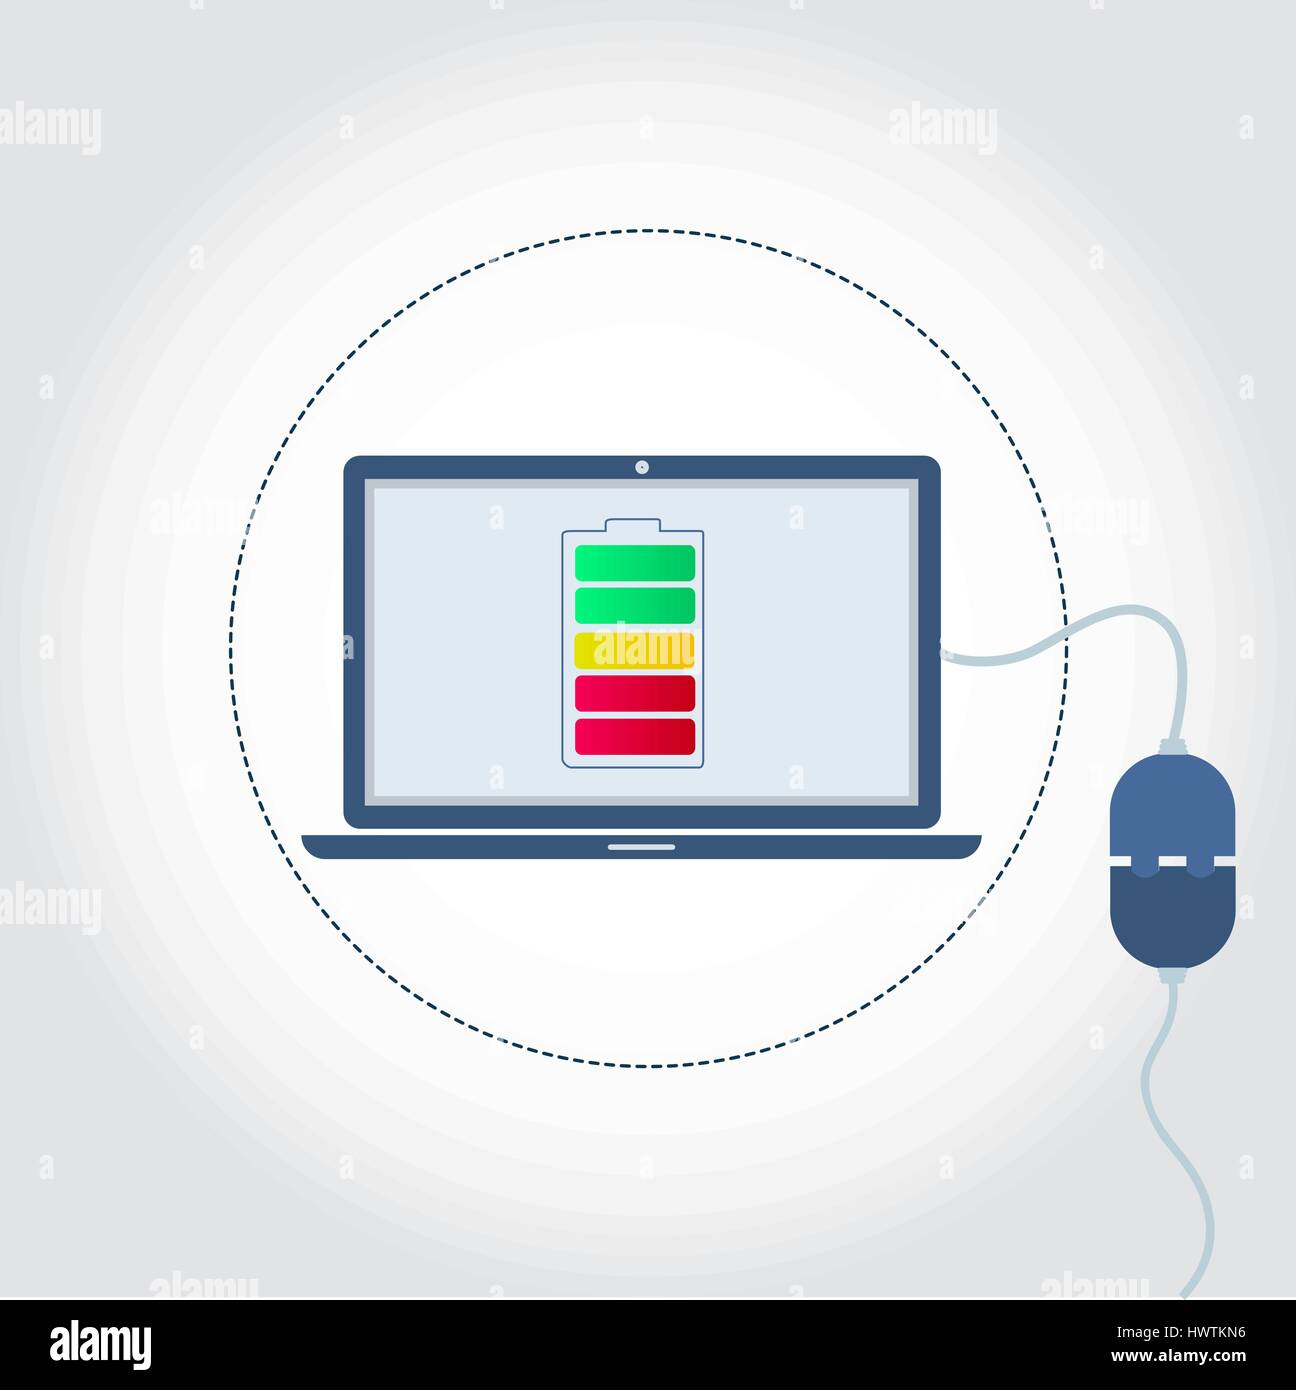 Laptop with a plug plugged in and battery symbol on monitor showing charge level. Empty space for insert text. - Stock Vector